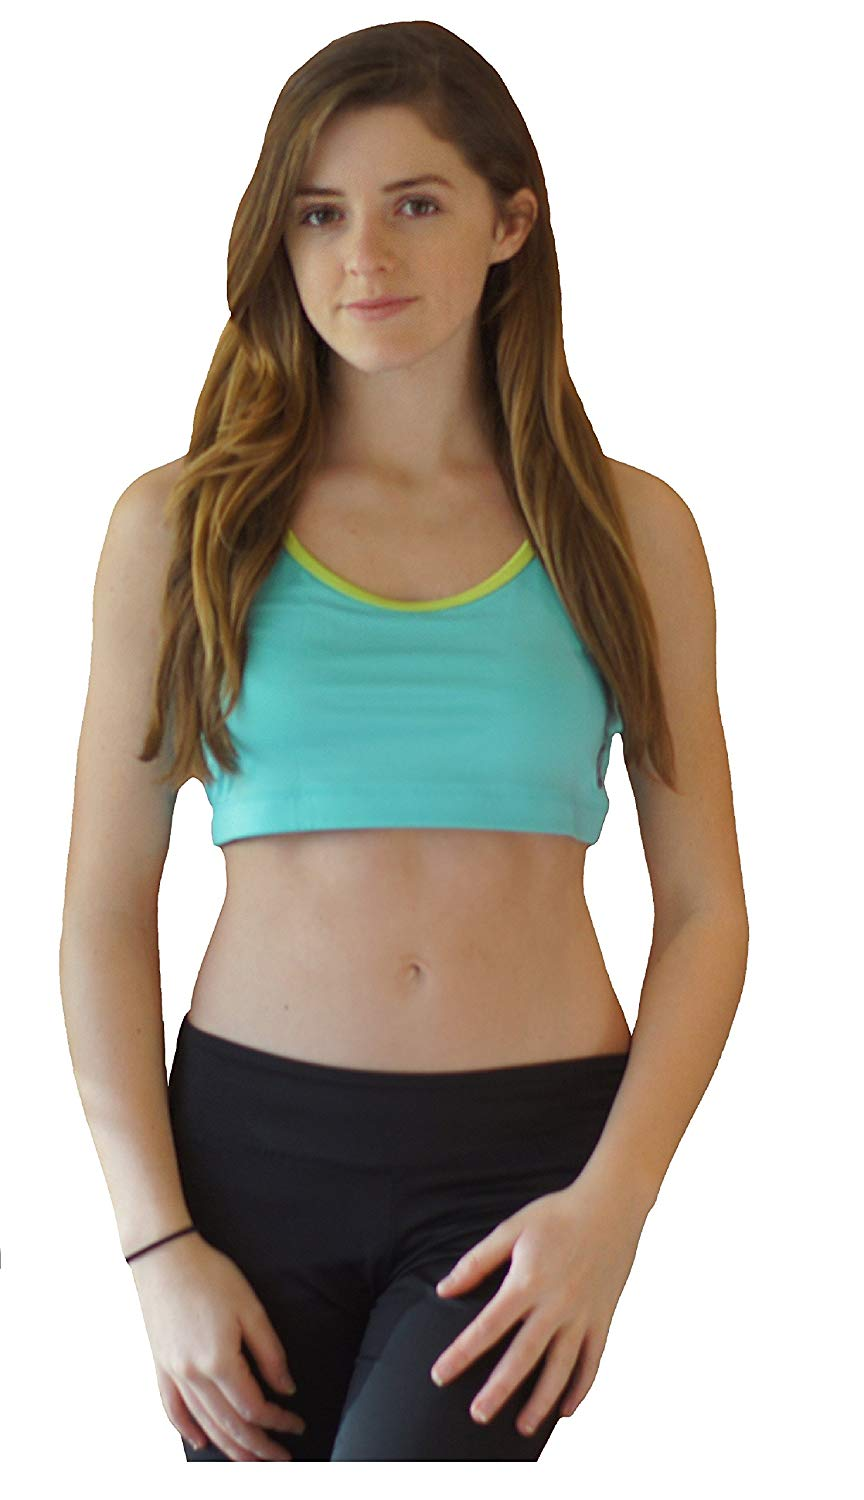 644edc6e6c9ee Get Quotations · Necessity Women Racerback Sports Bras for Workout and All Gym  Sports Bra